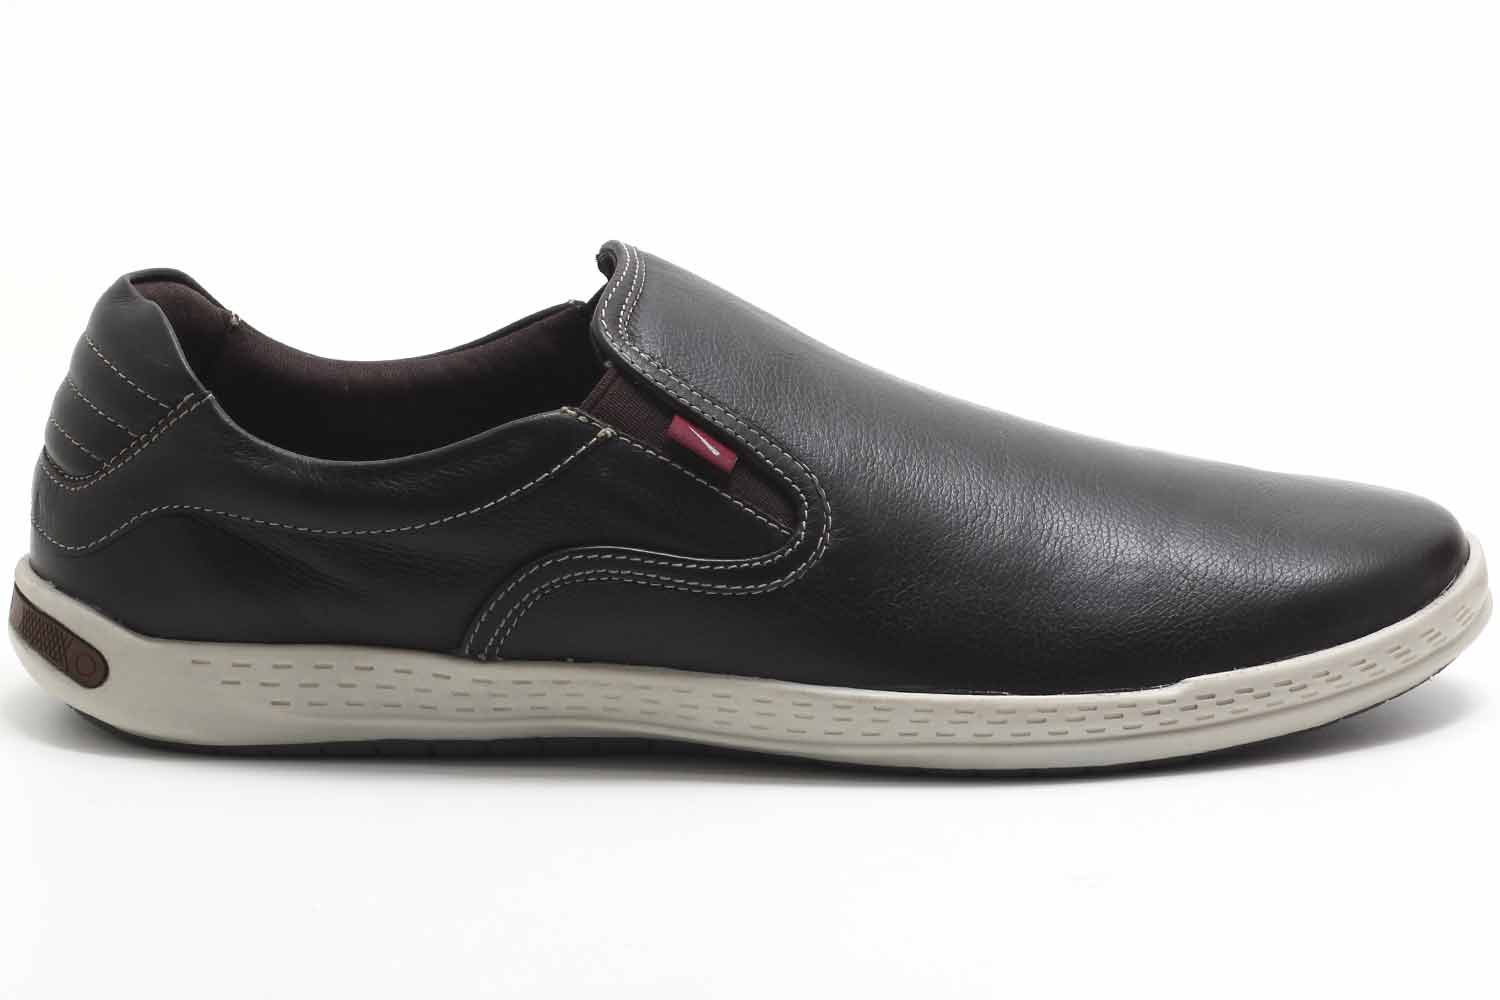 Slip on Ferracini Masseratti Couro Iate Masculino 7363-268